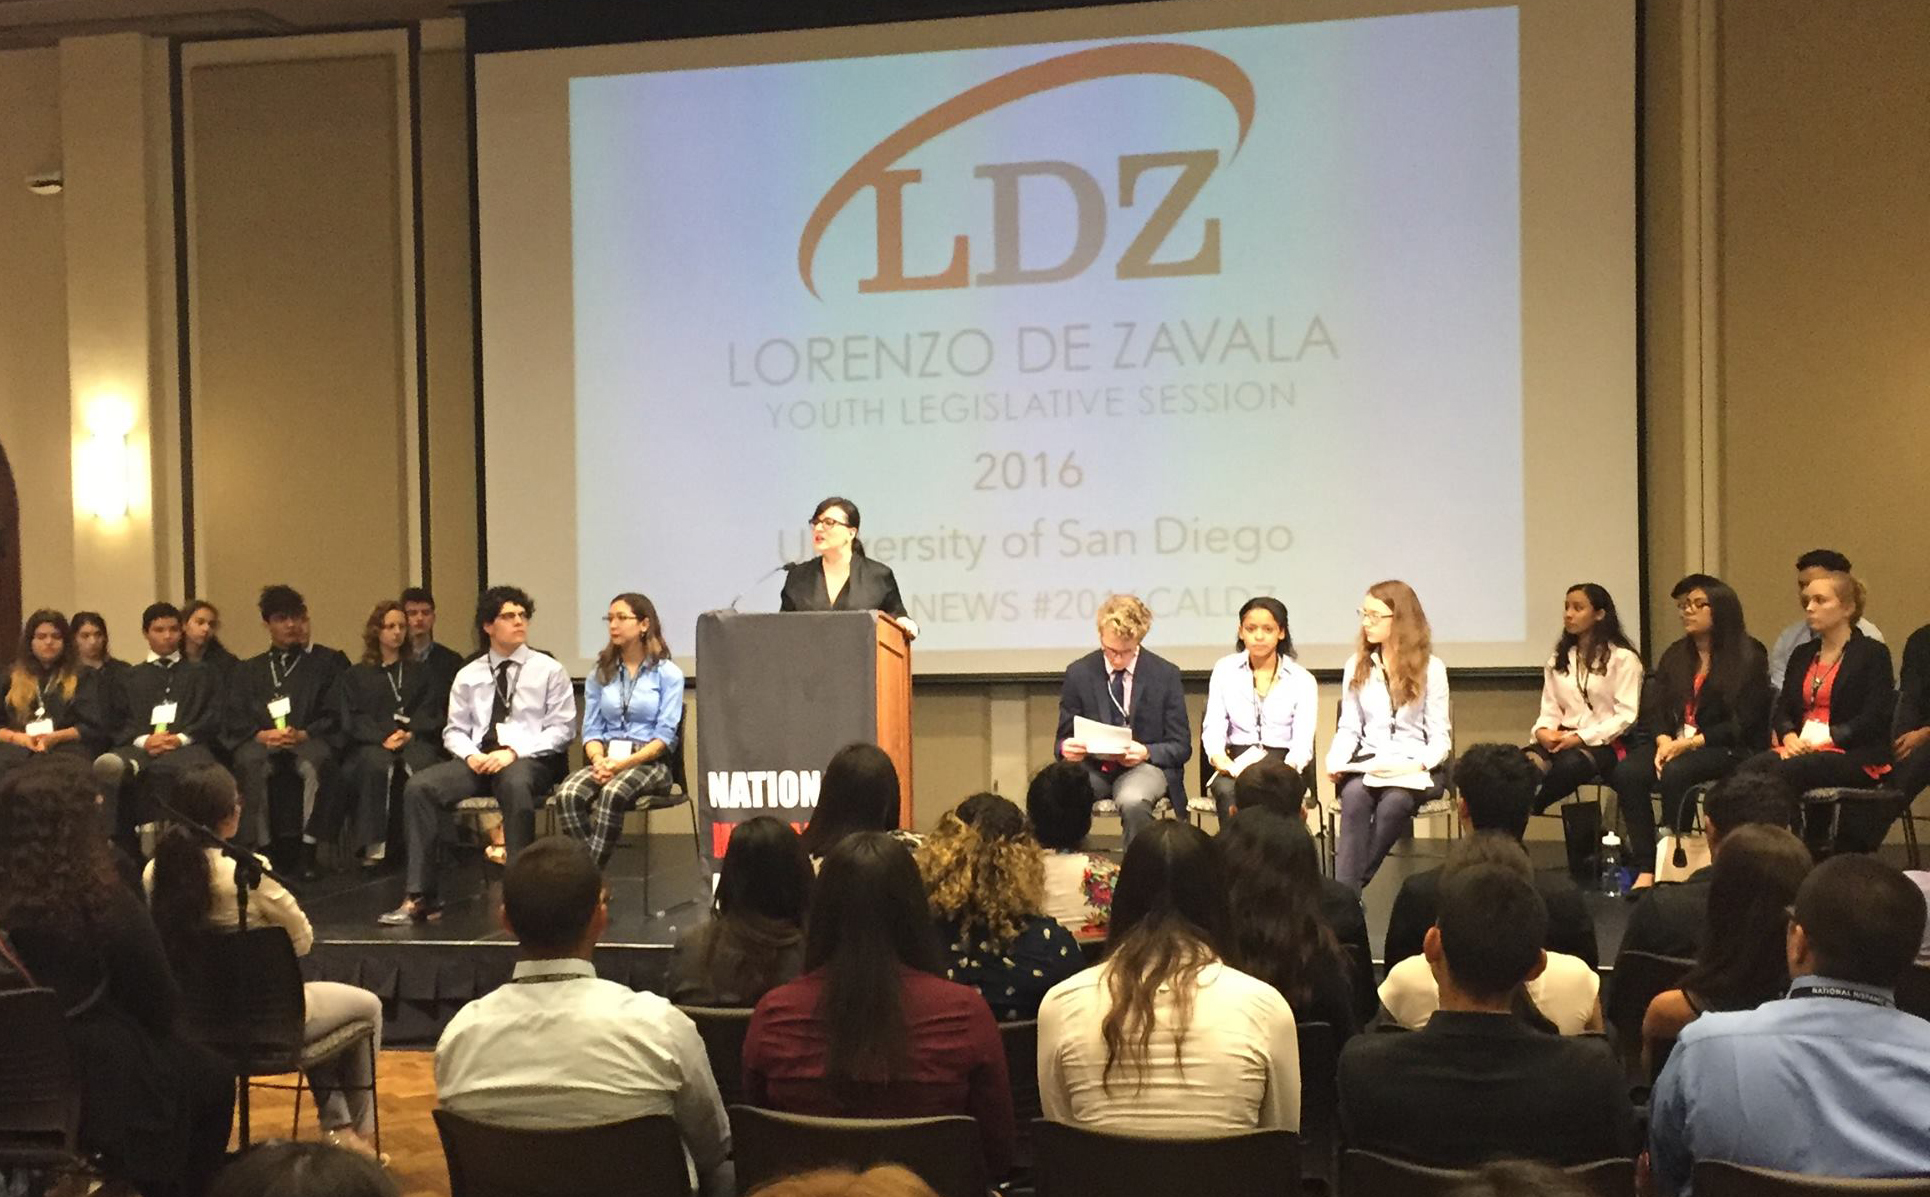 Olivia Traveiso opens the California LDZ session.